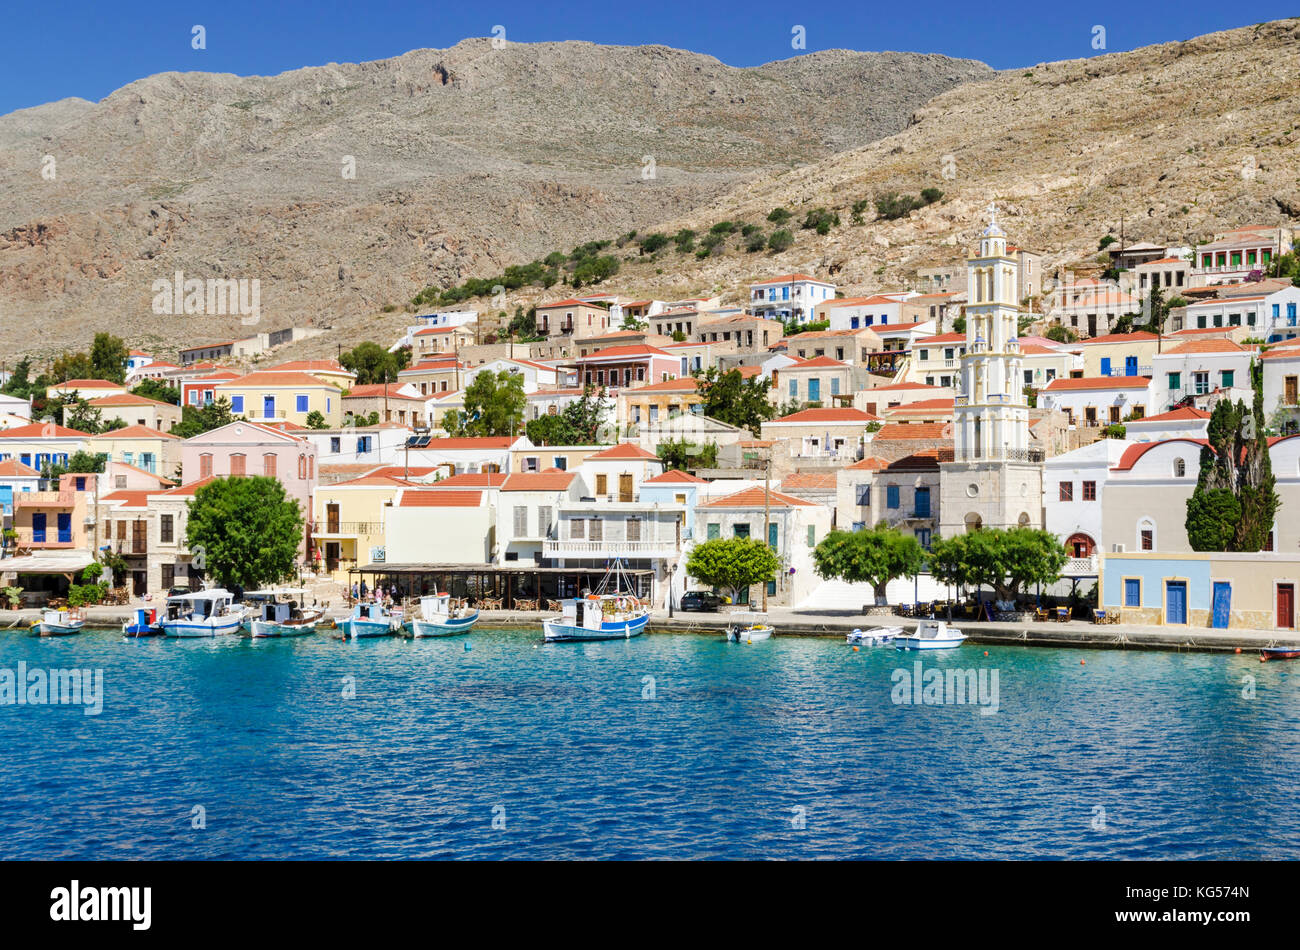 Taverna and boat lined waterfront of the port town of Emborios, Halki Island, Dodecanese, Greece - Stock Image